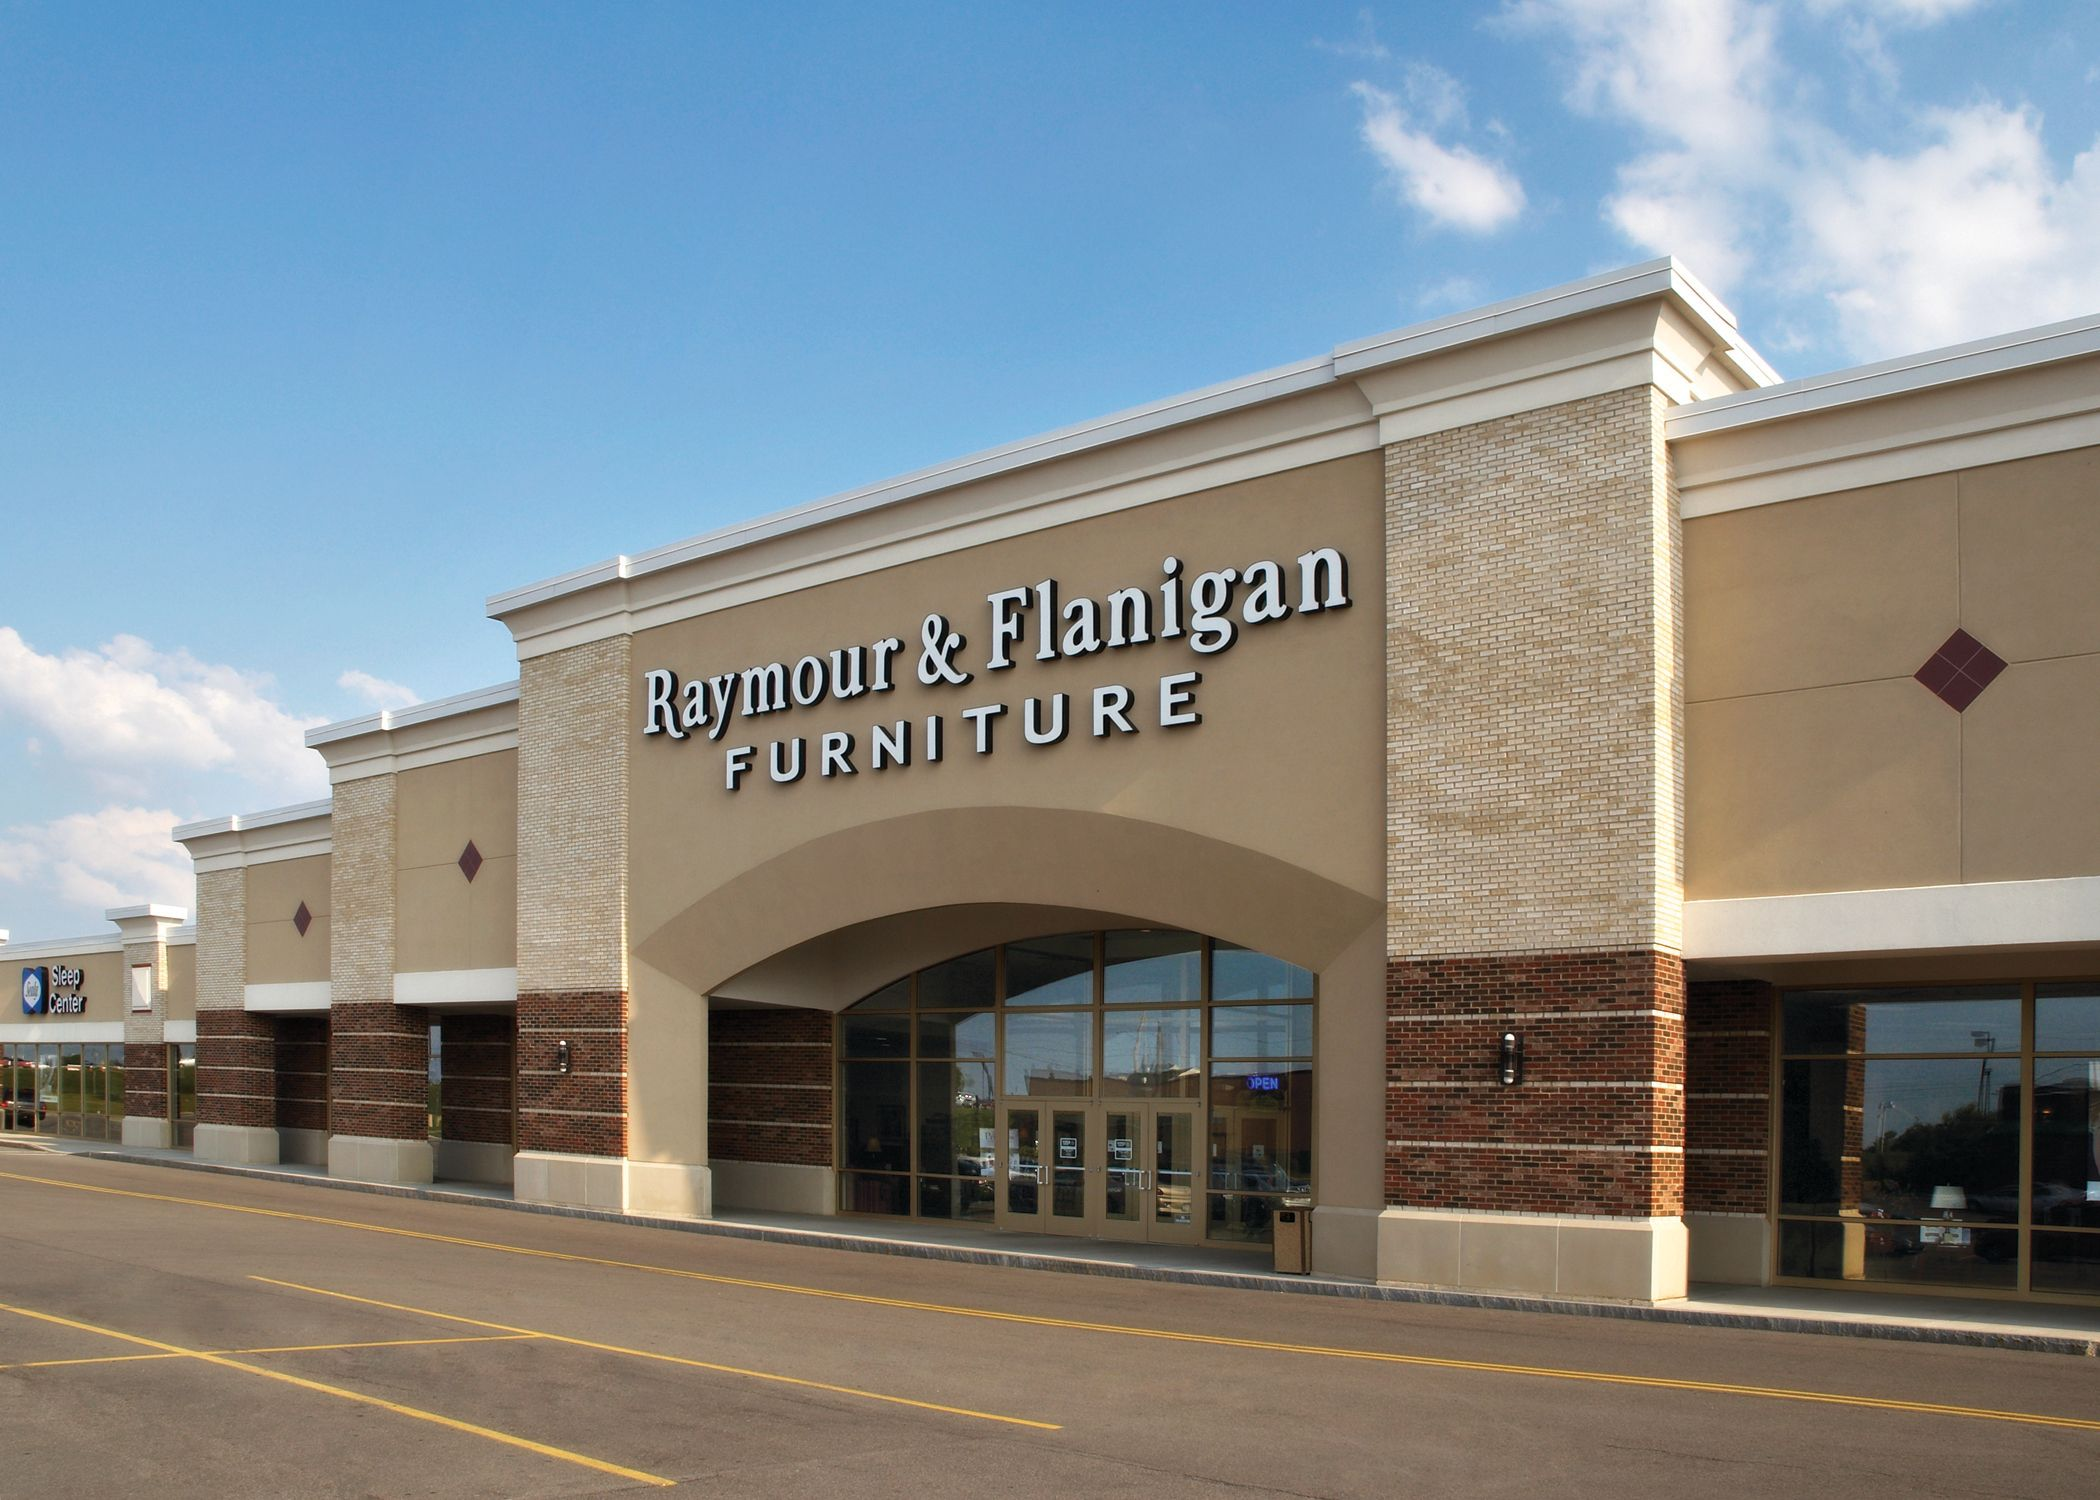 Top 10 Furniture Stores: Find The Best Brands